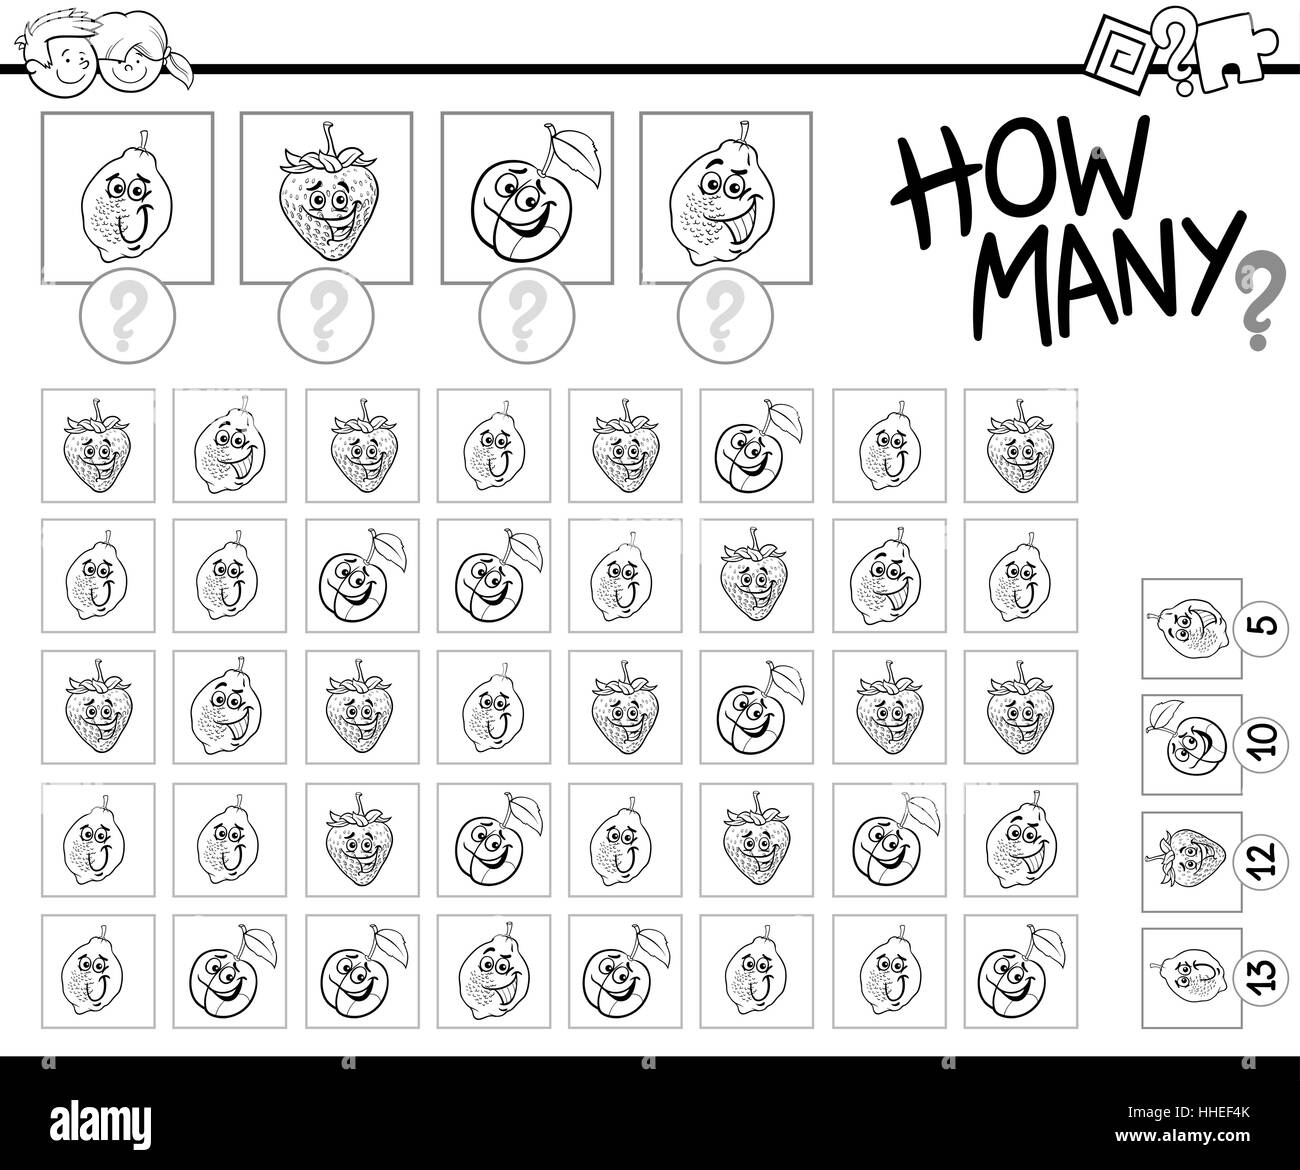 Black And White Cartoon Illustration Of Educational Hoe Many Counting Activity For Children With Fruit Characters Coloring Page